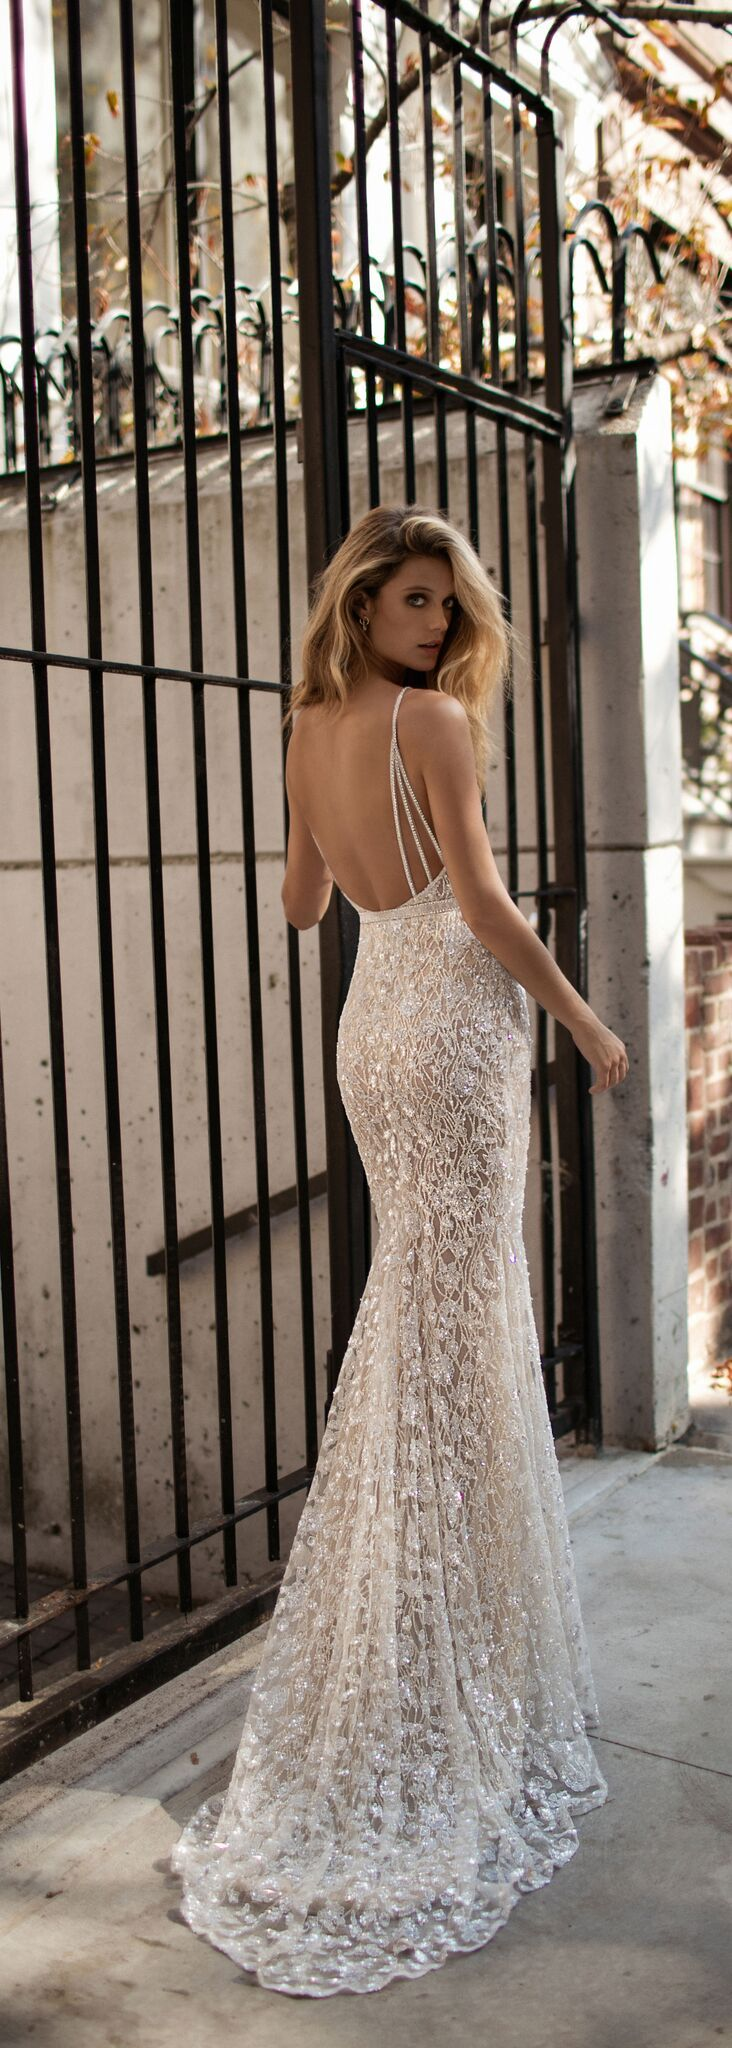 The texture and strap detailing on this @bertabridal gown are just beautiful.